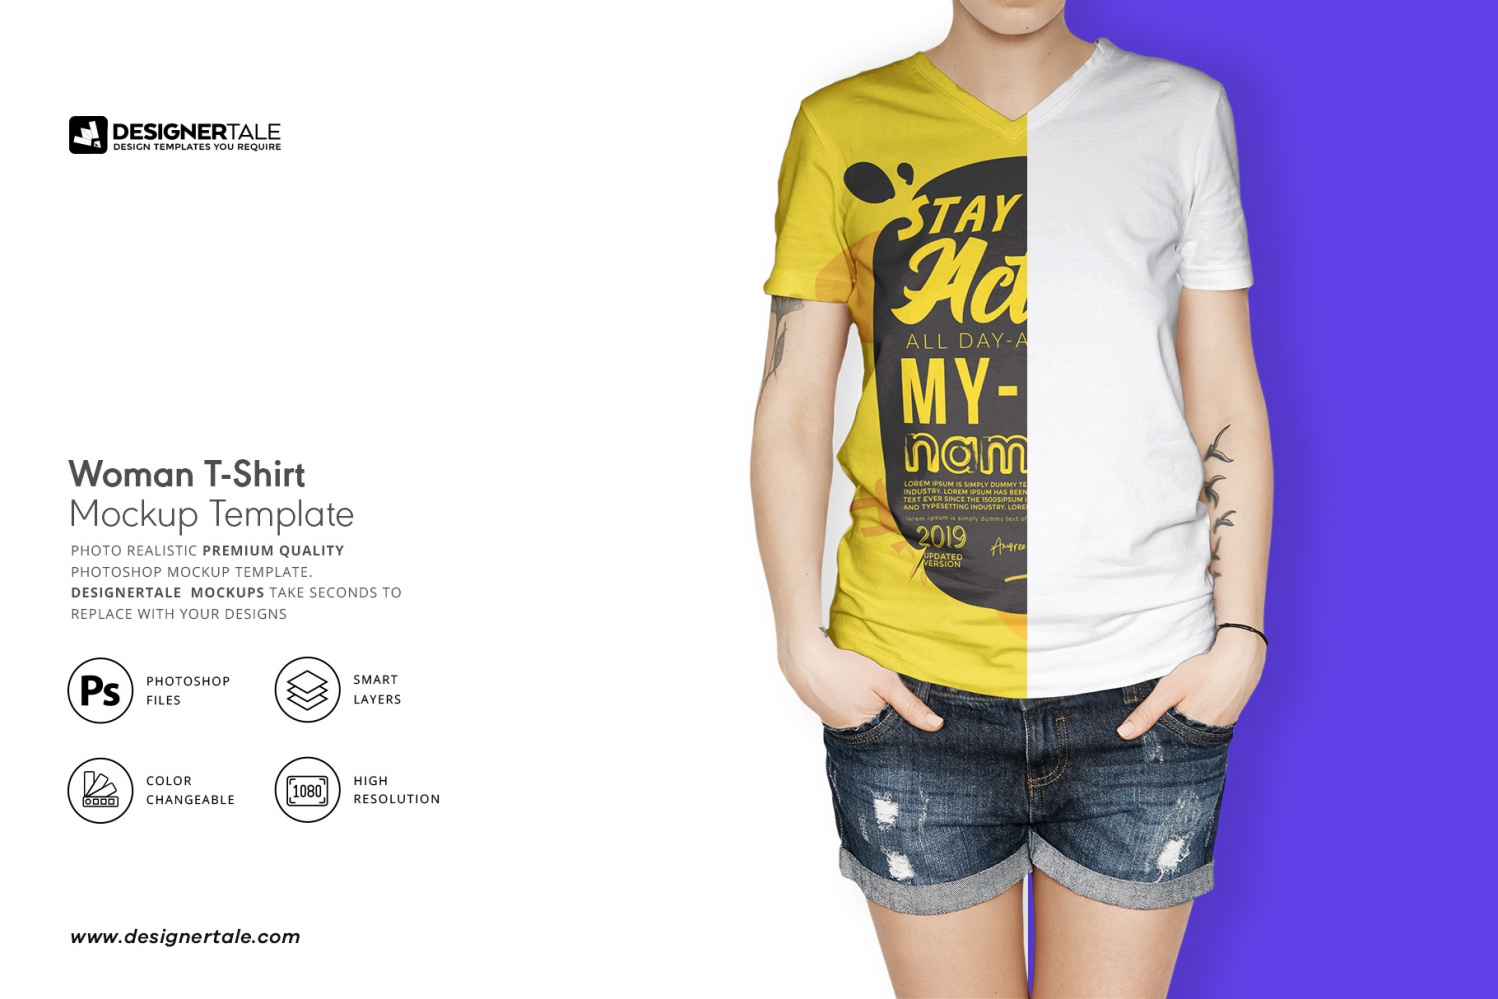 female t-shirt mock up download designertale